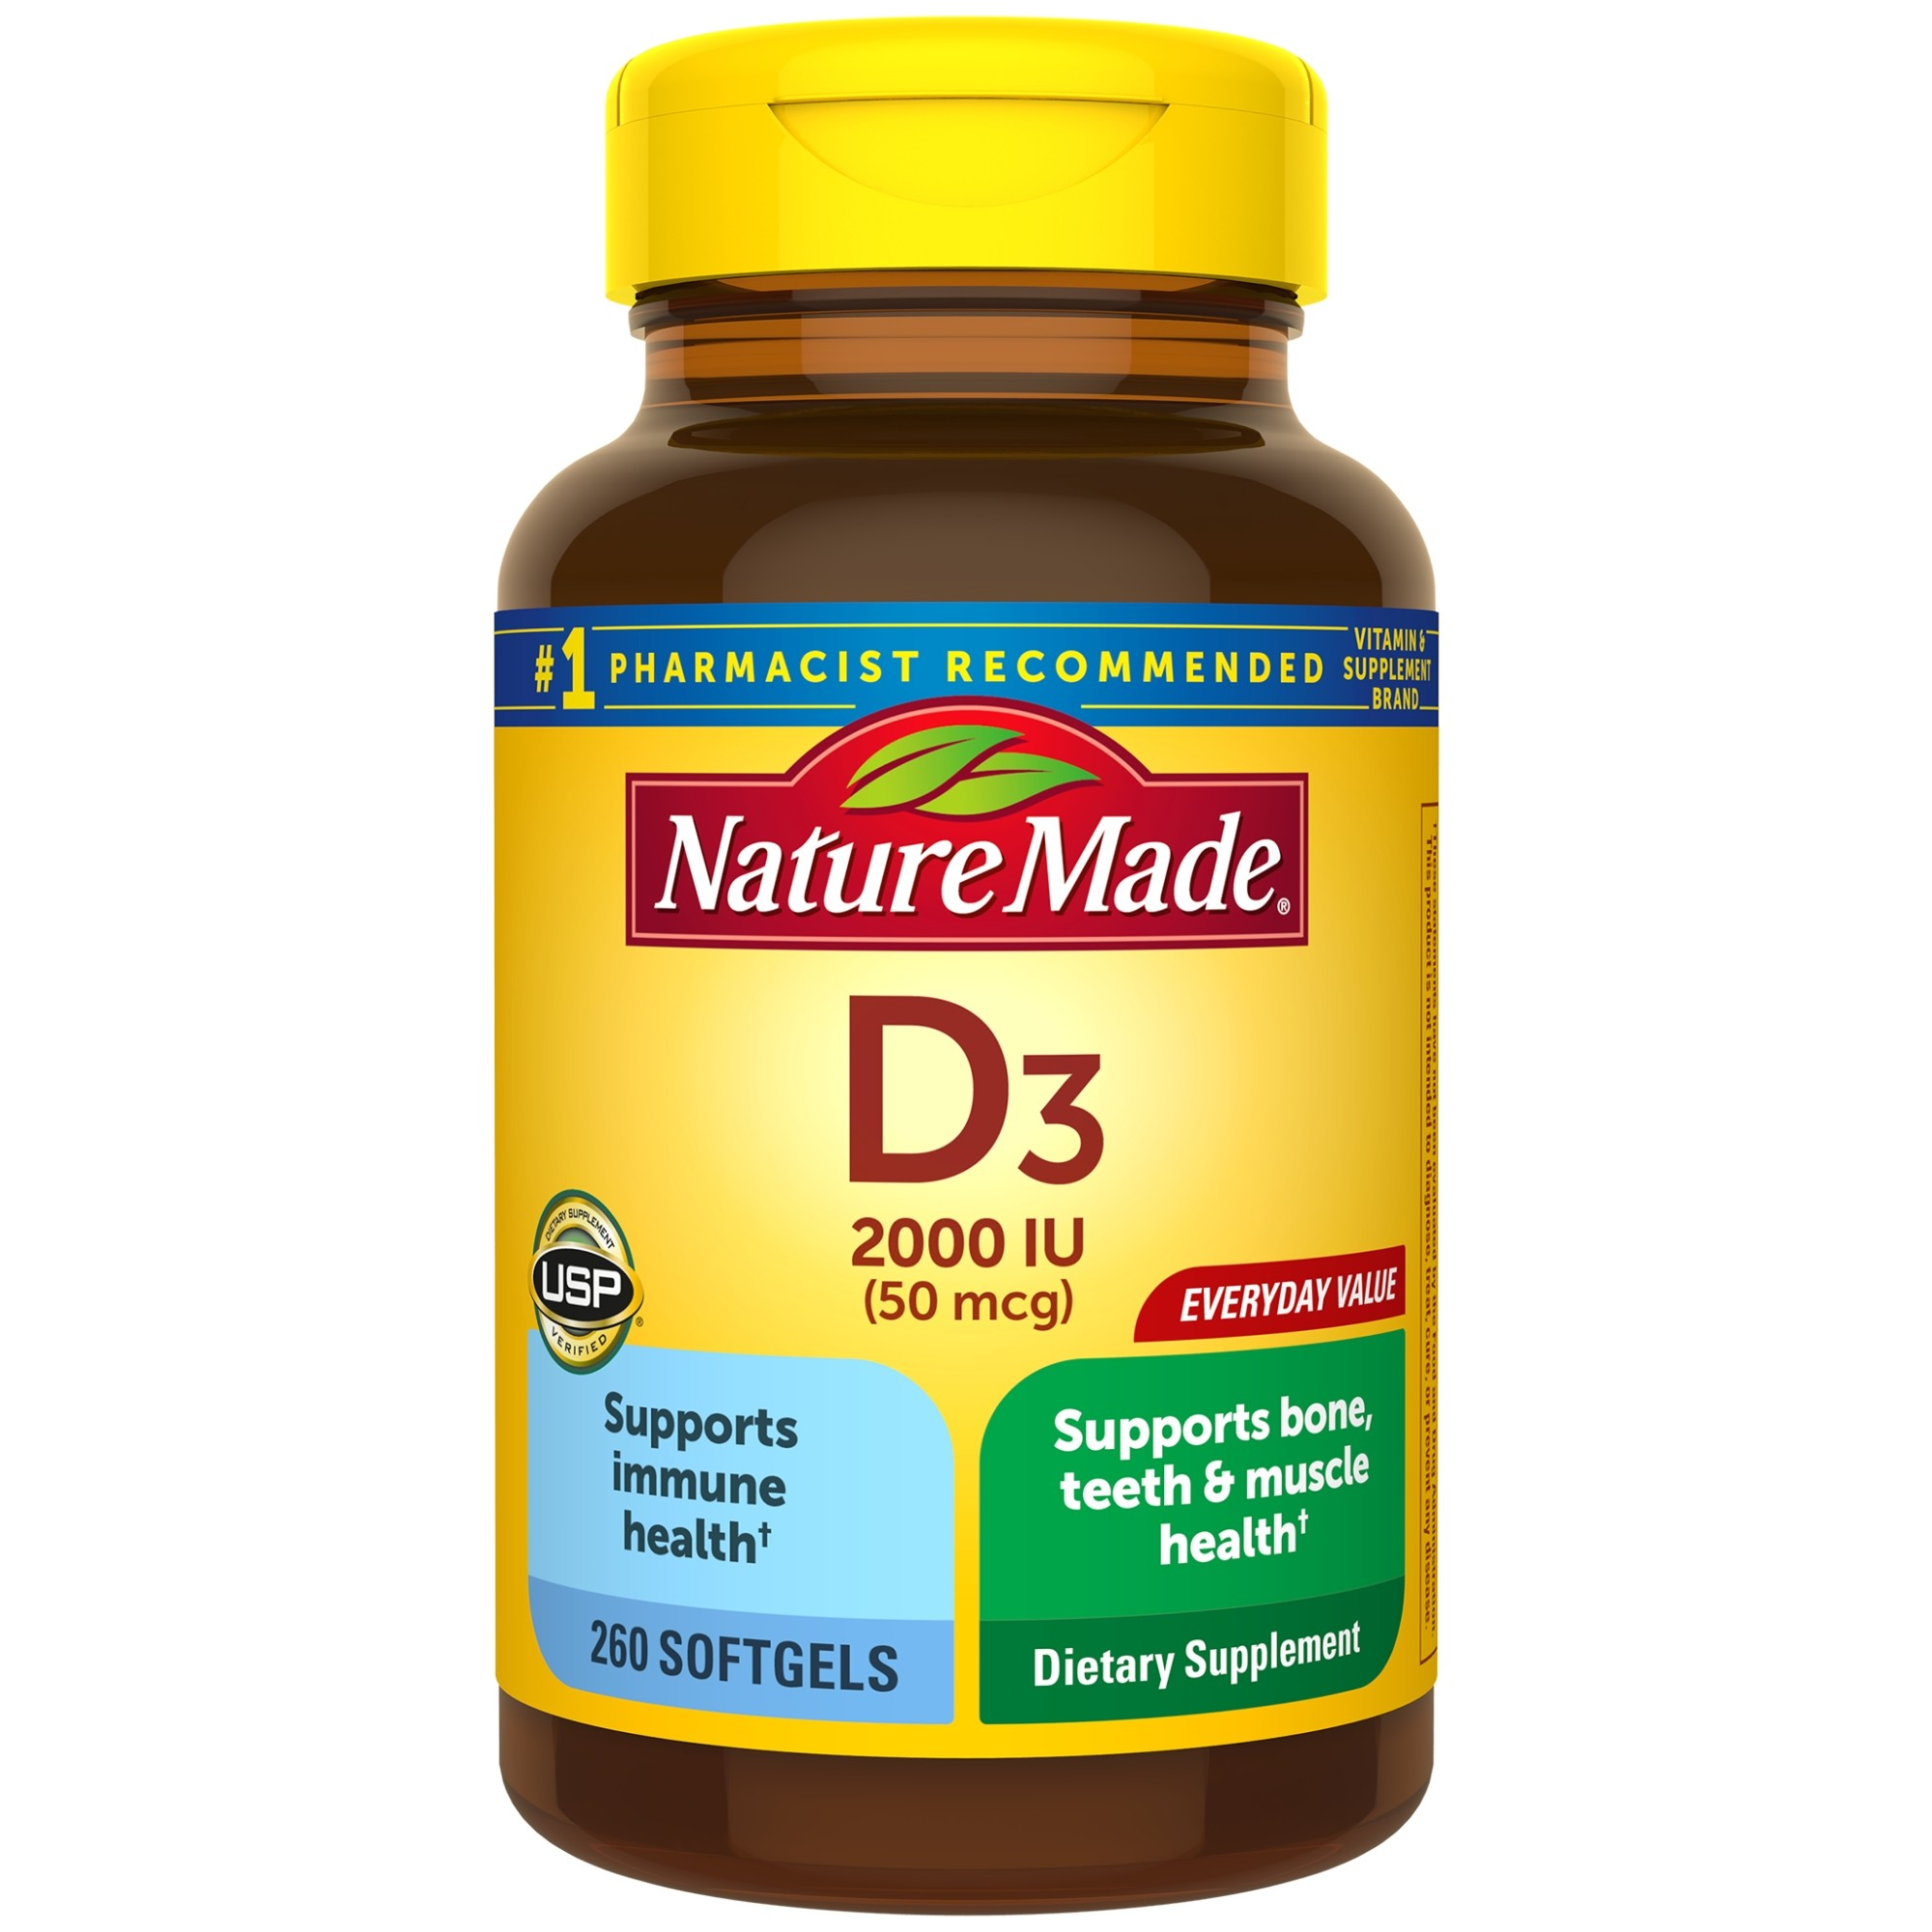 Nature Made Vitamin D3 2000 IU (50 mcg) Softgels, 260 Count Everyday Value for Bone Health†